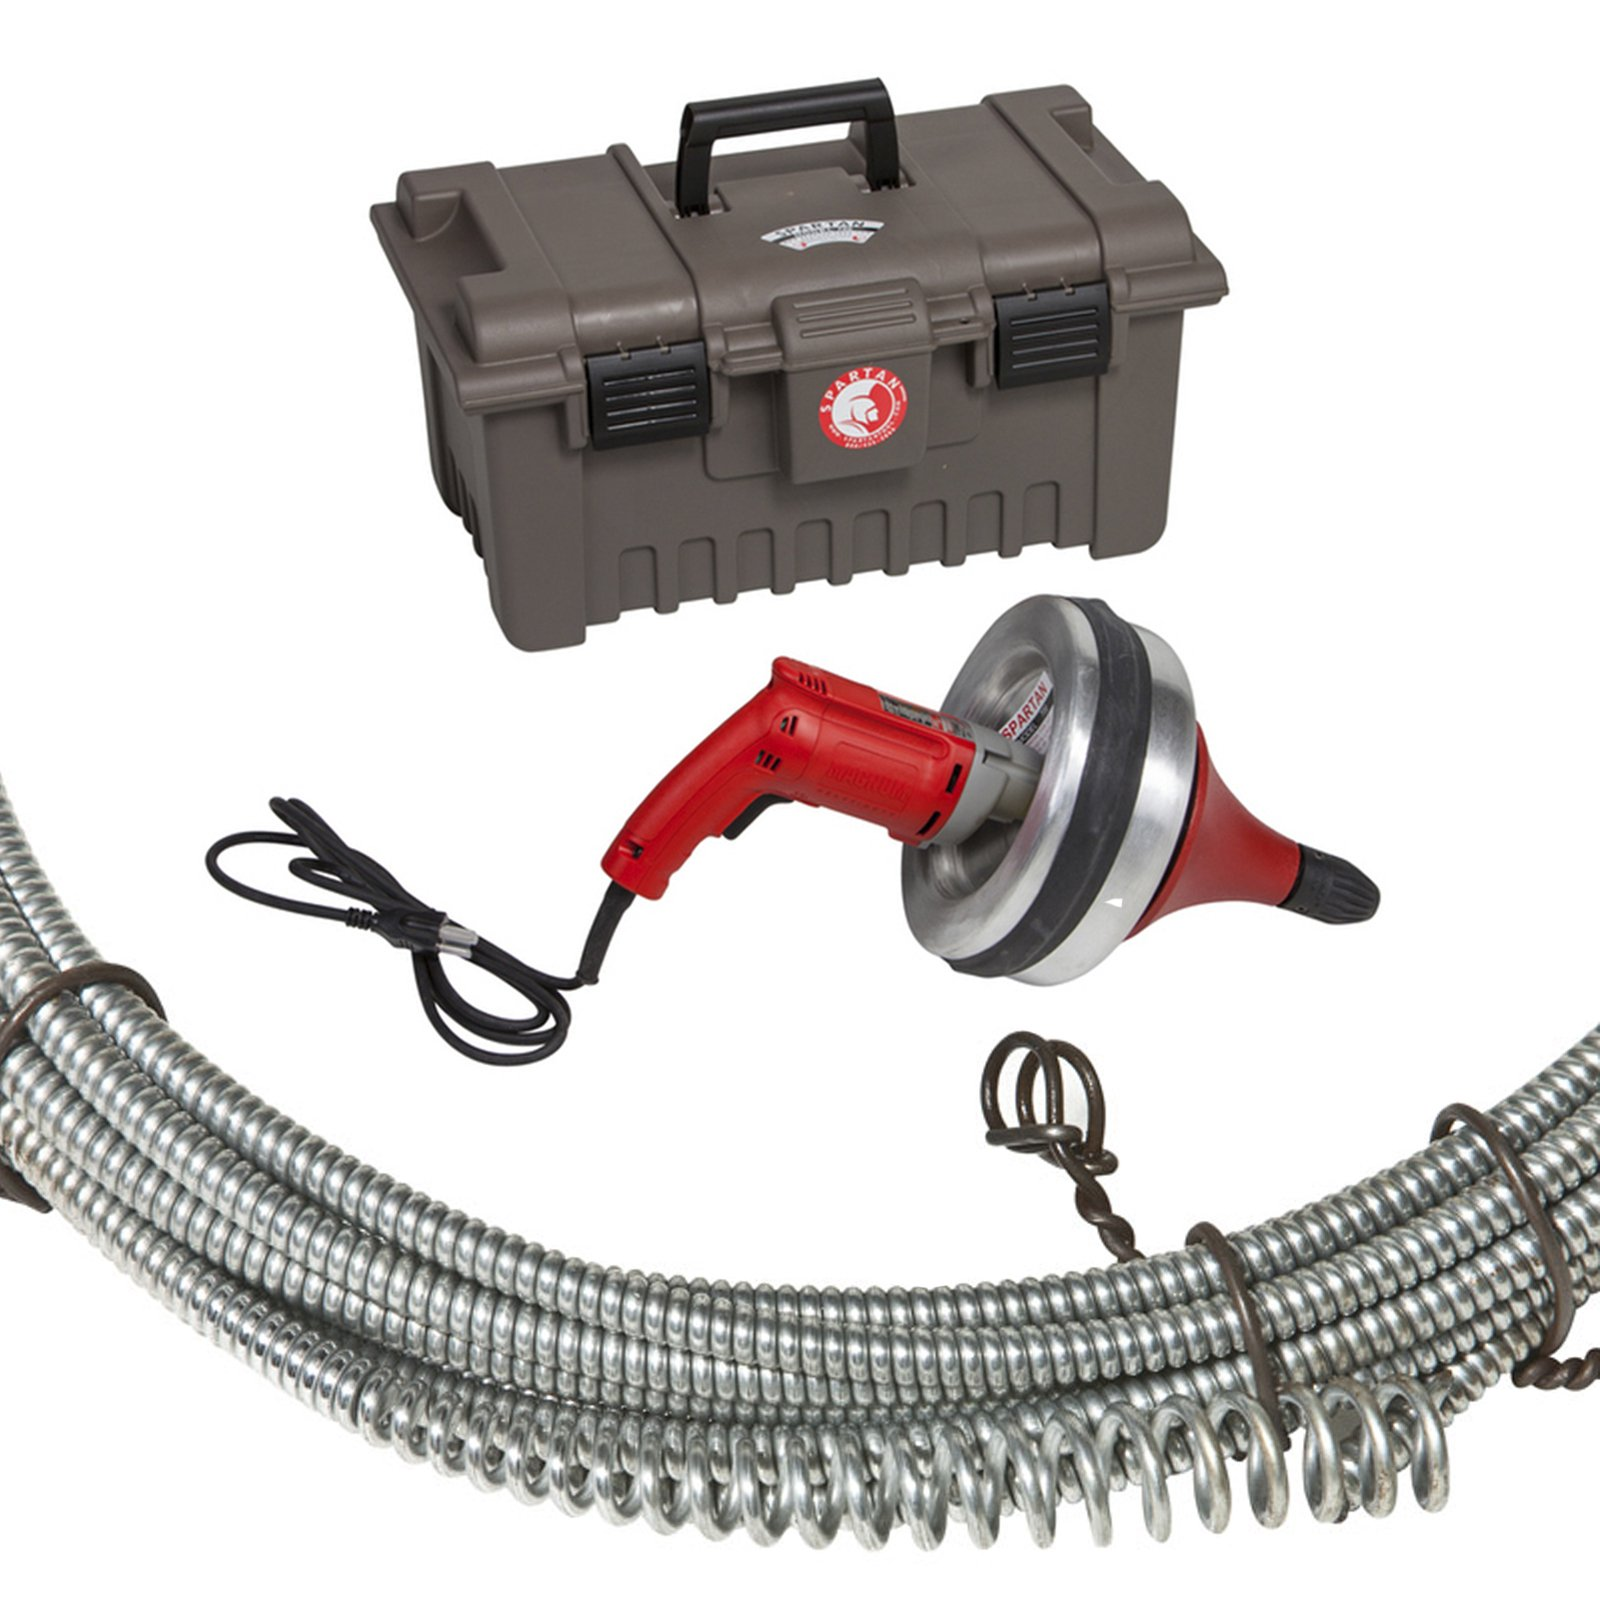 Spartan Tool 700 Handheld Drain Cleaning Machine with 1/4'' x 25' Open Hook Drain Cable 02755309 and 4212102